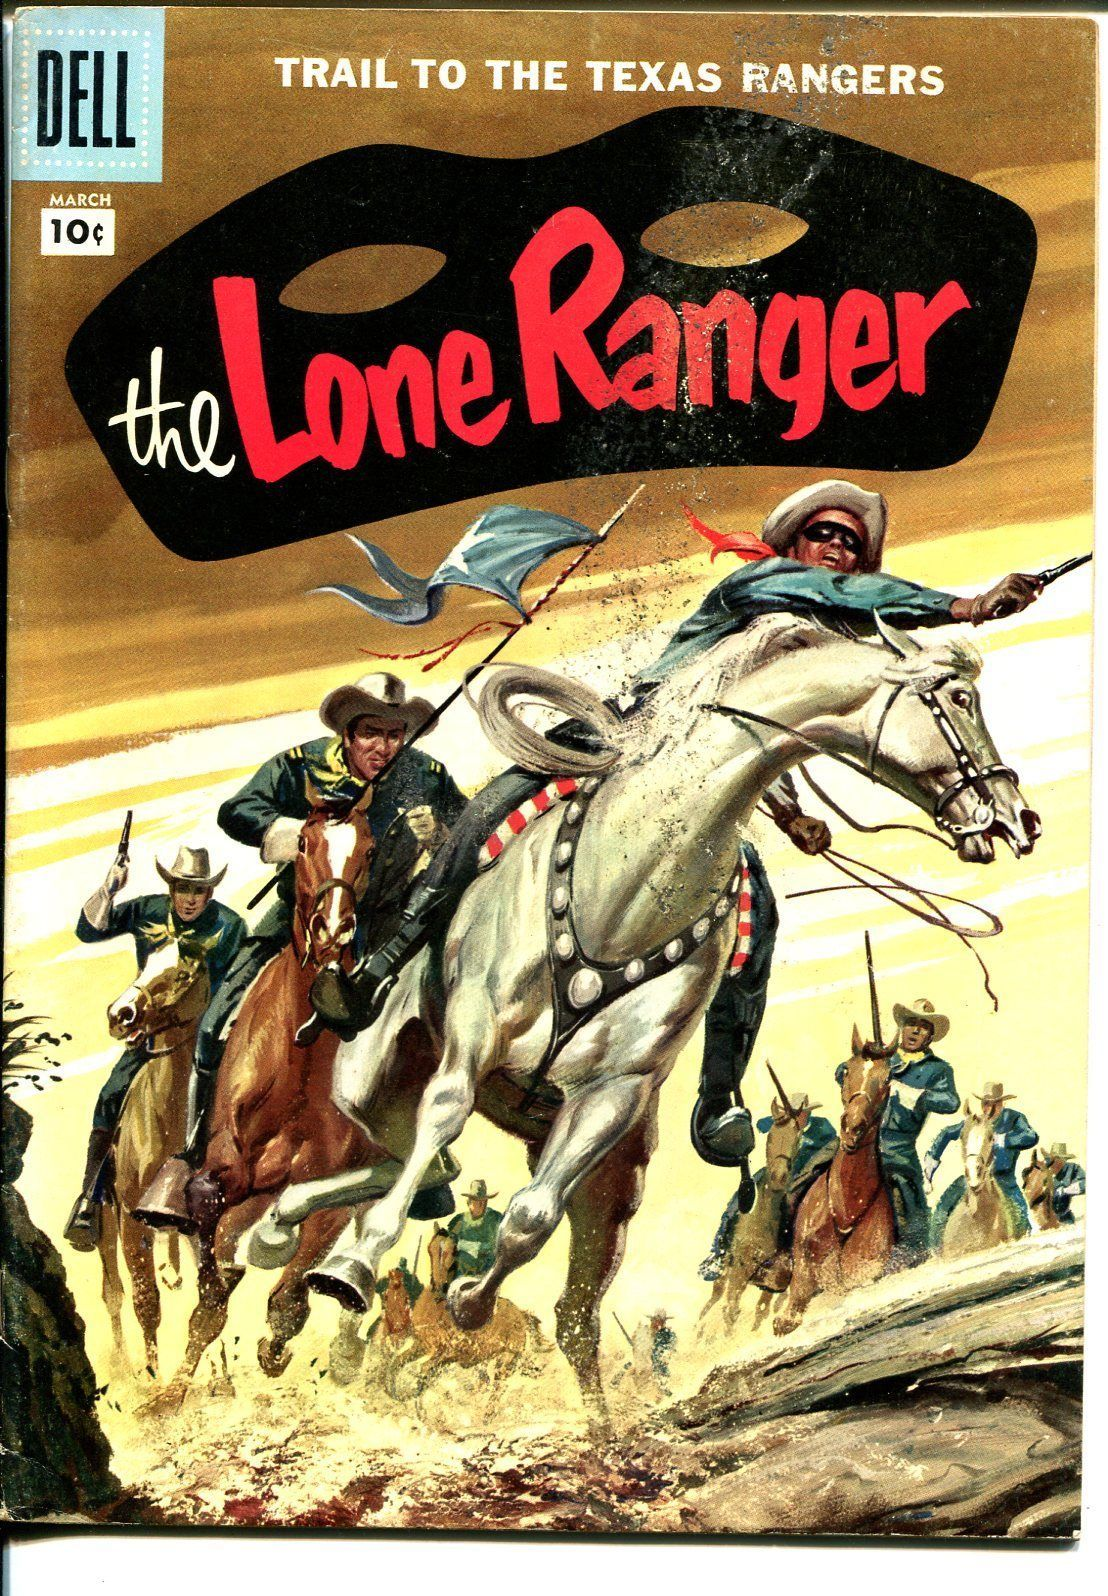 Lone Ranger #105 1957-Dell-painted cover-Texas Rangers-VG